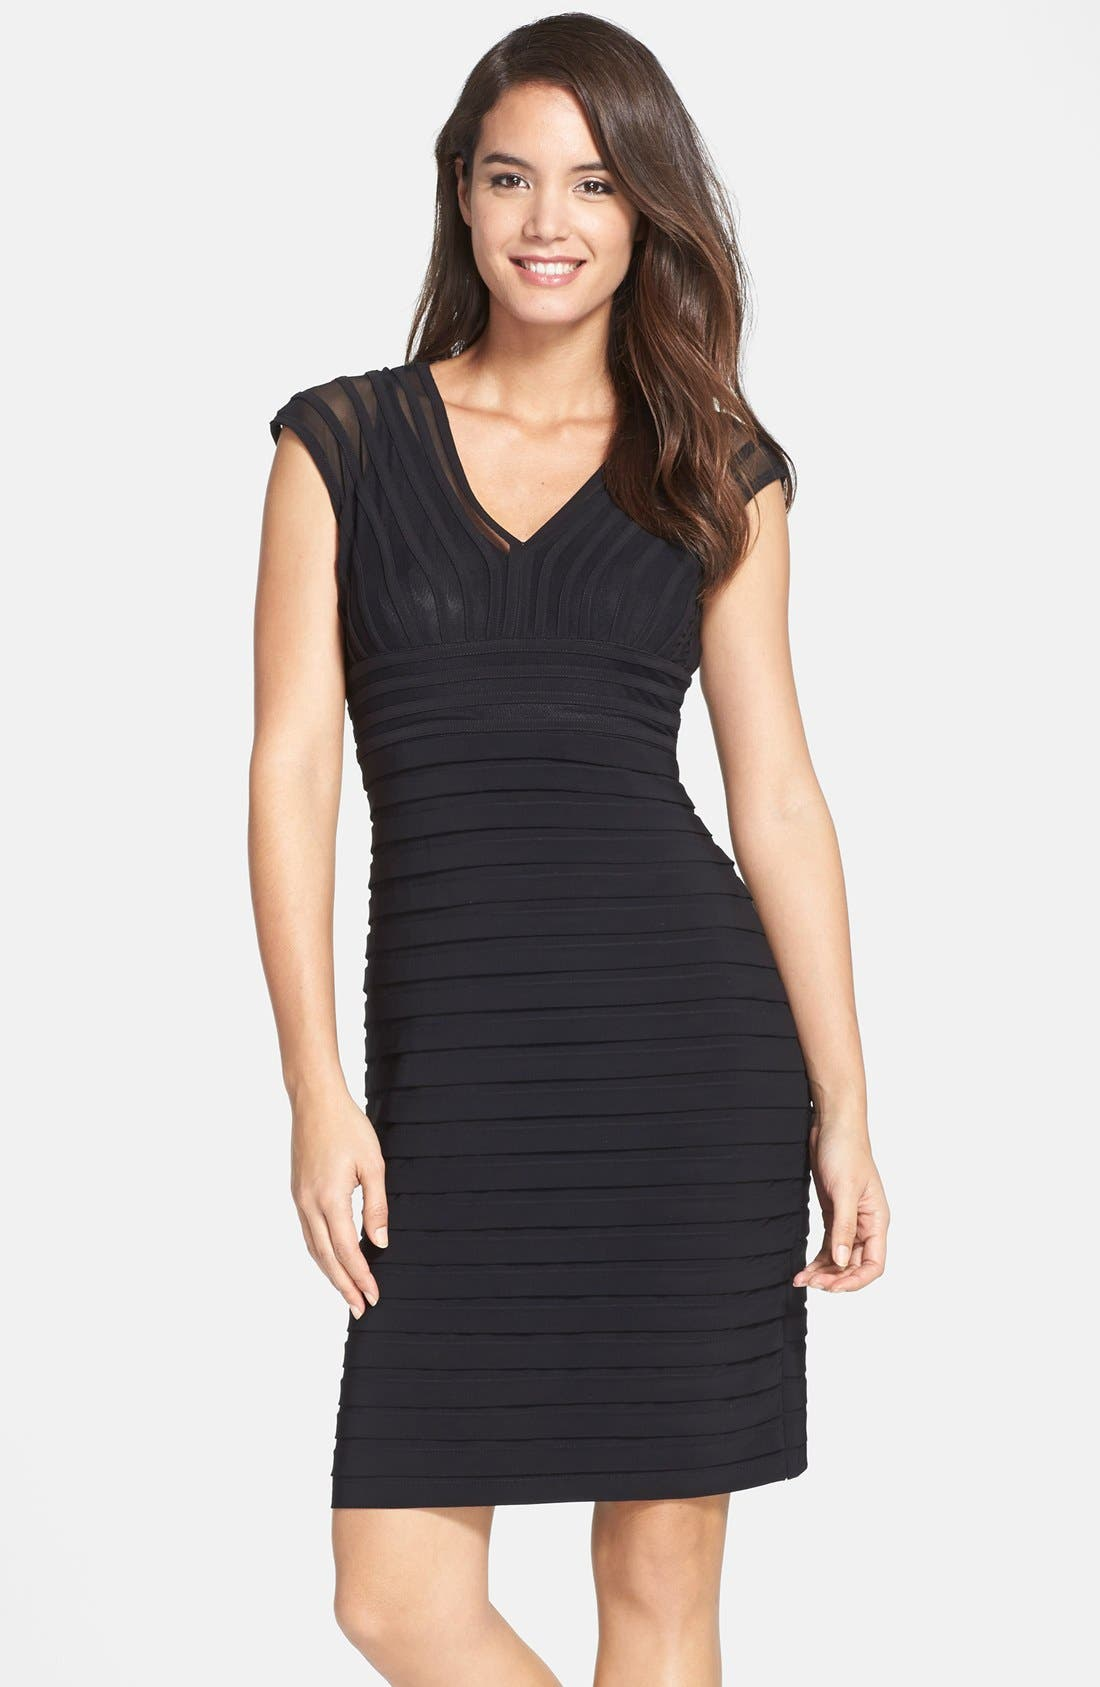 Main Image - Adrianna Papell Shutter Pleat Jersey Sheath Dress (Regular & Petite) (Nordstrom Exclusive)